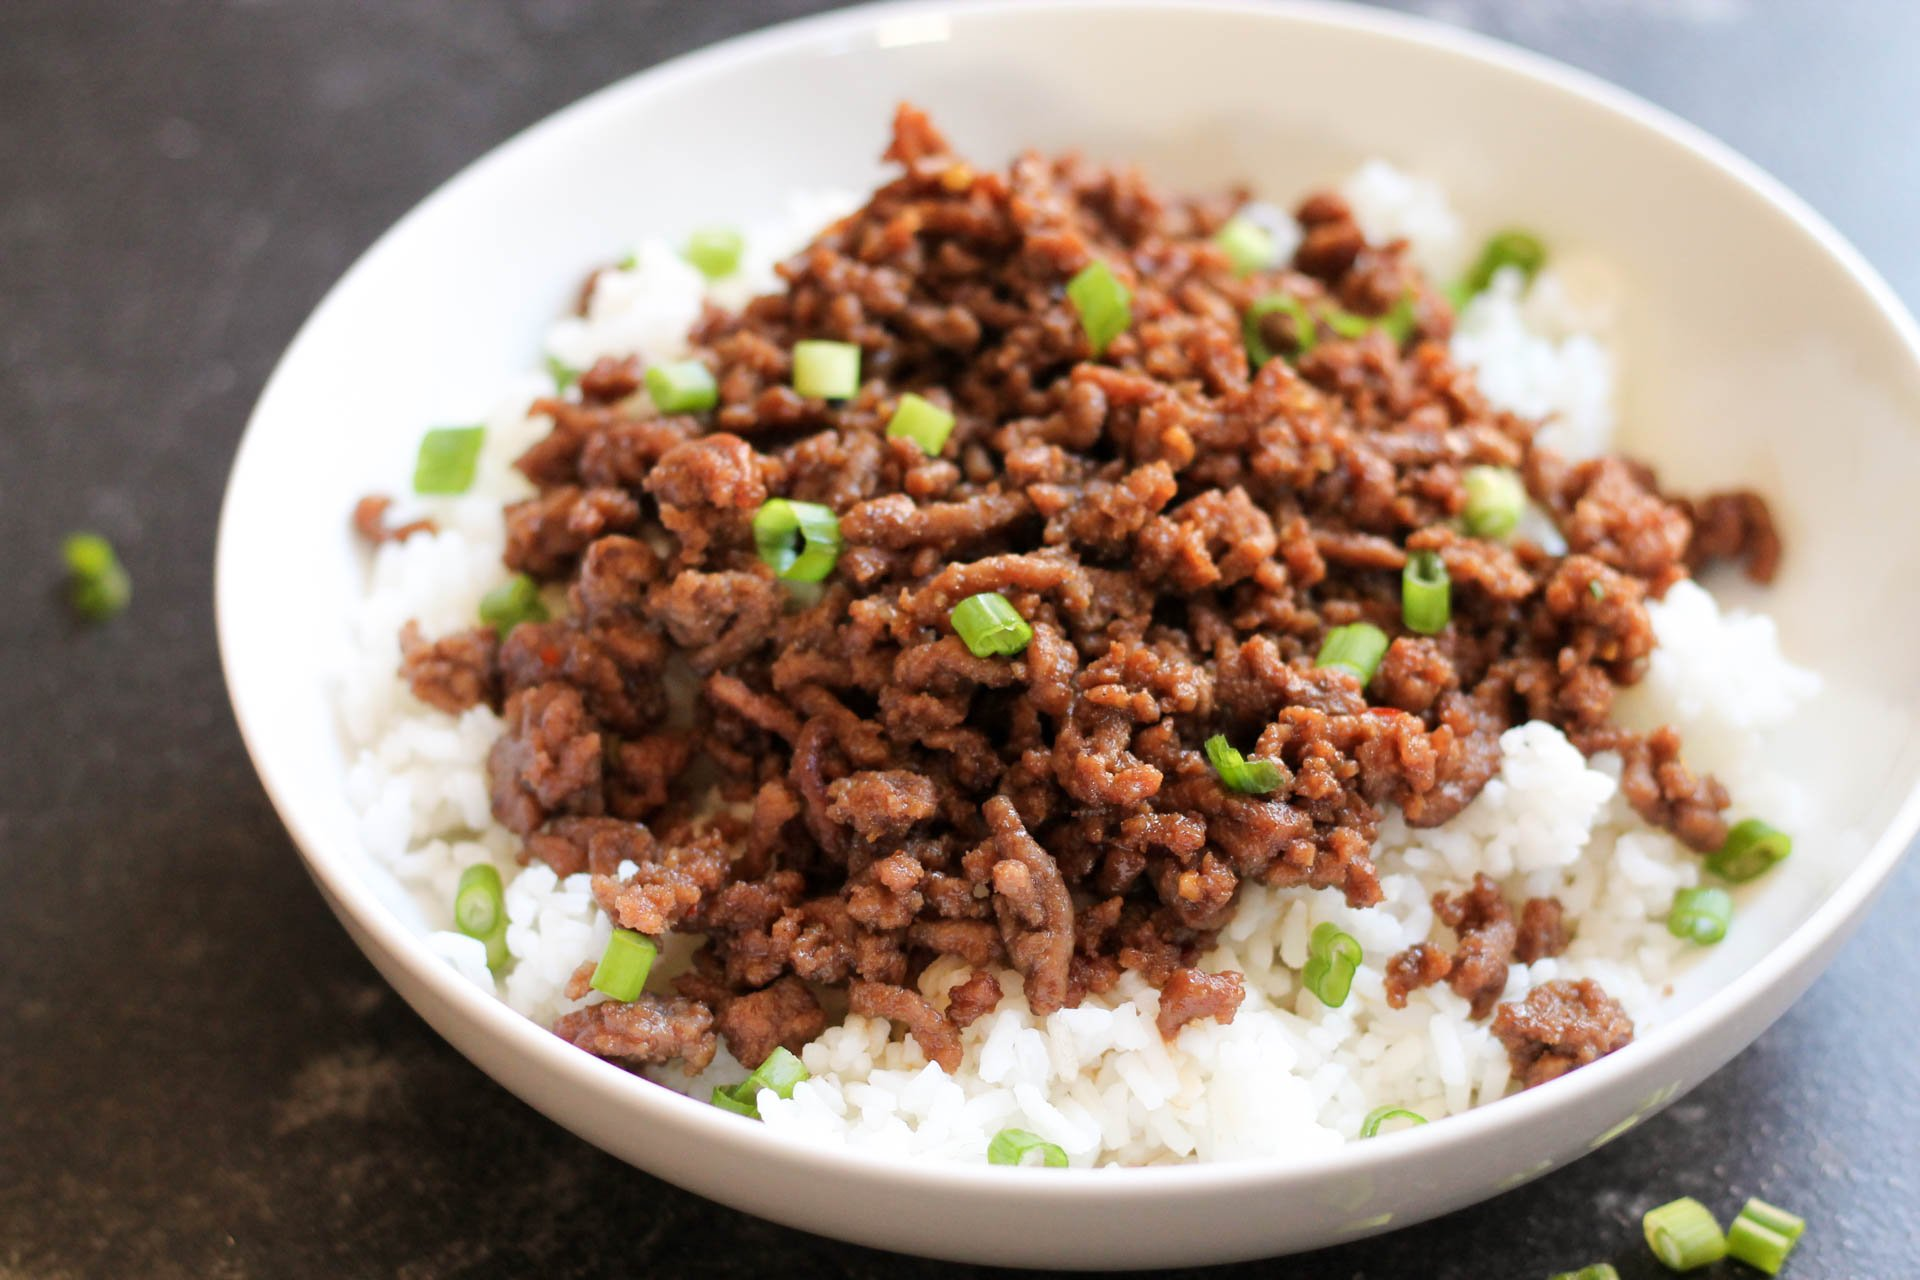 Korean Beef served over white rice in a white bowl